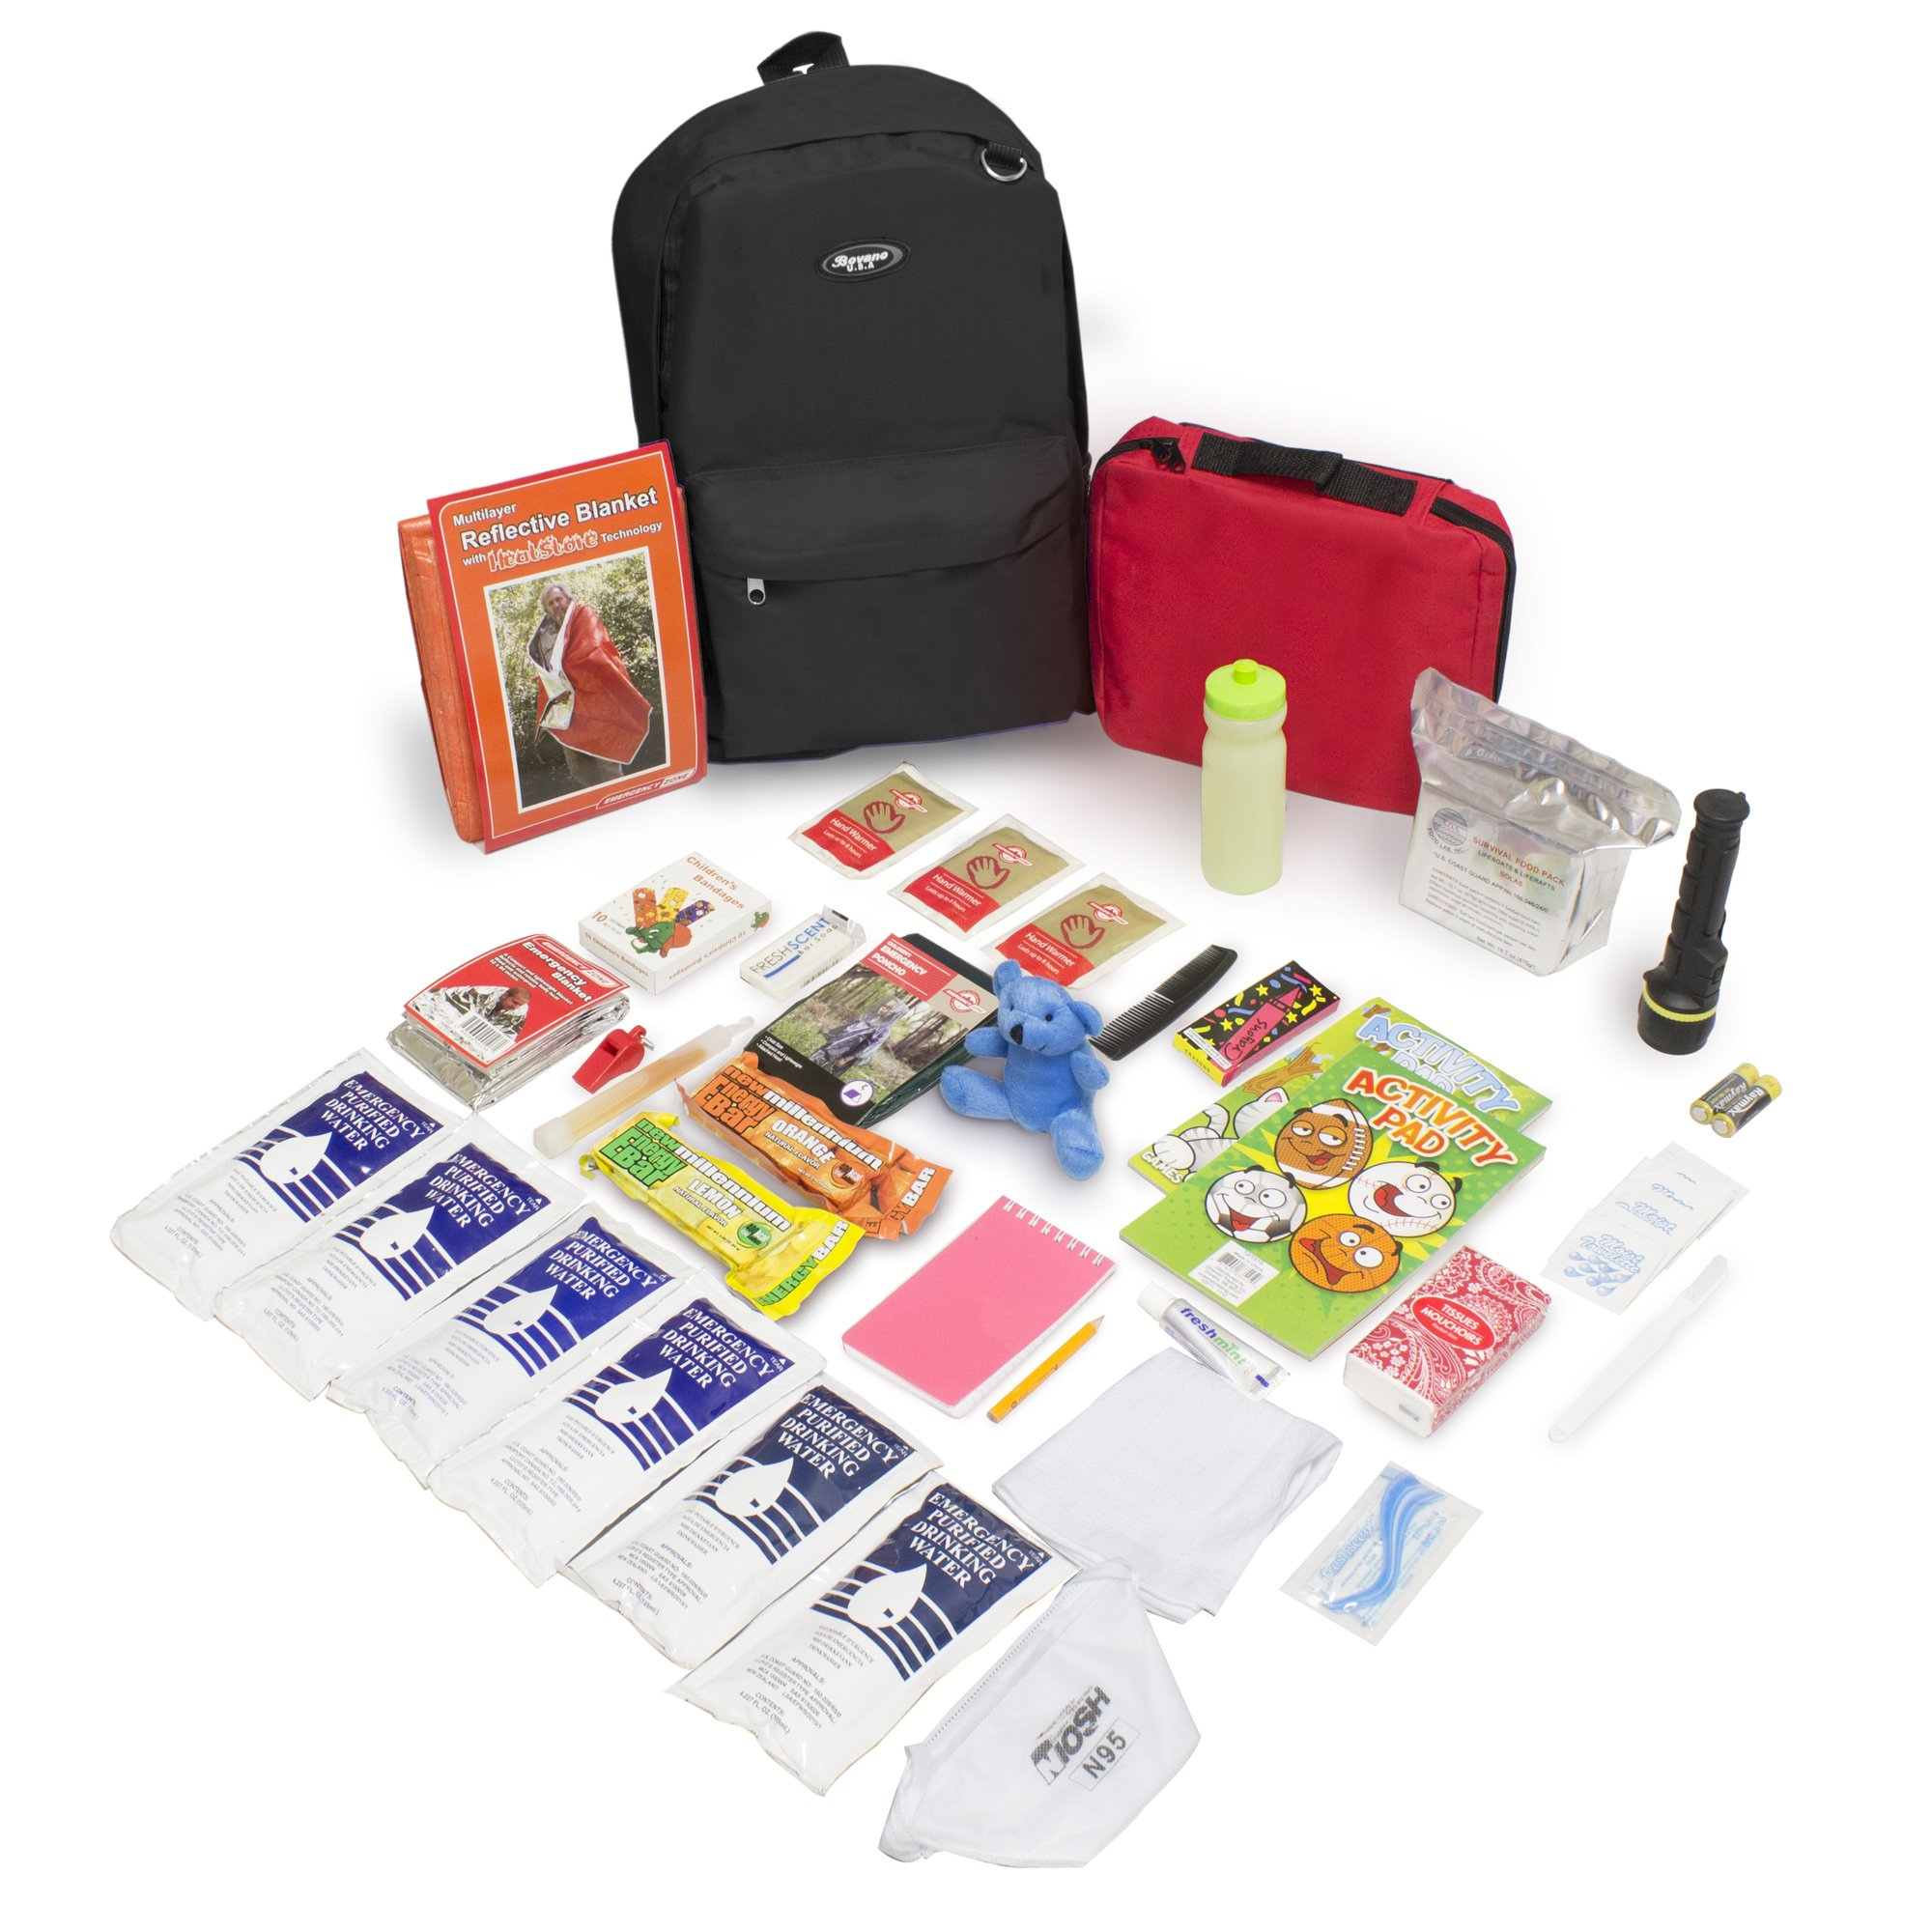 Keep-Me-Safe Children's Deluxe 72-Hr Emergency Survival Kit, Black by Emergency Zone